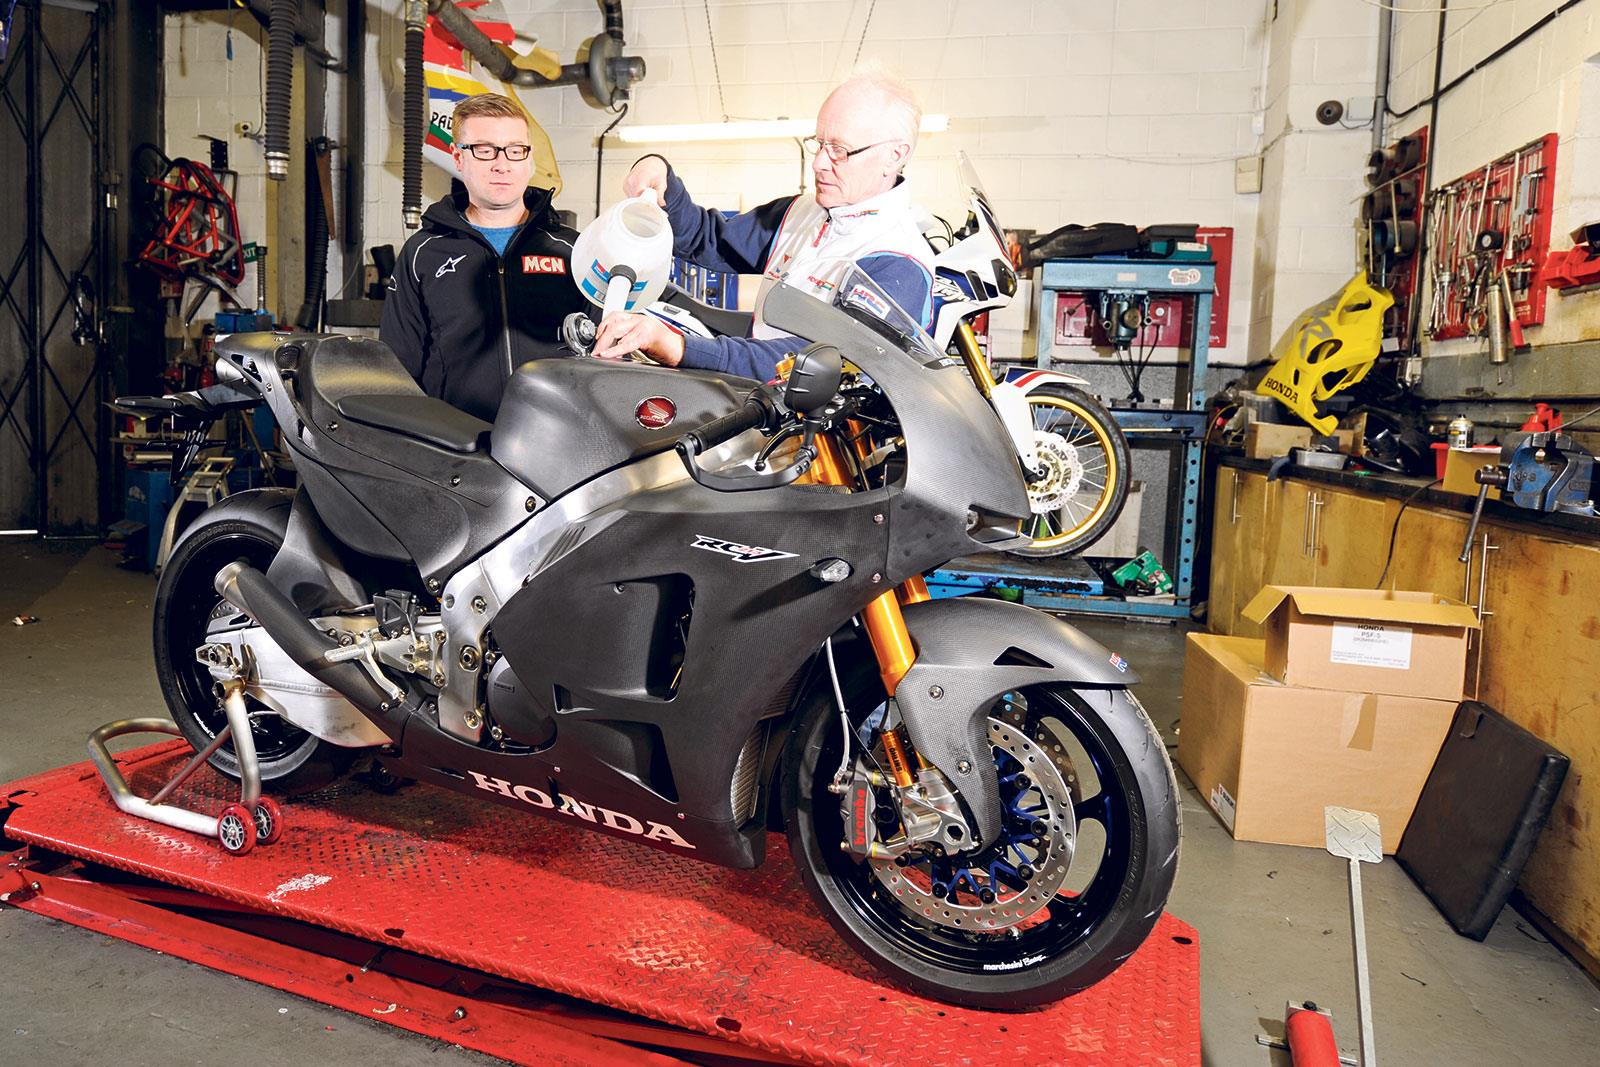 Hondas For Sale >> Unwrapping perfection – Honda's RC213V-S arrives | MCN